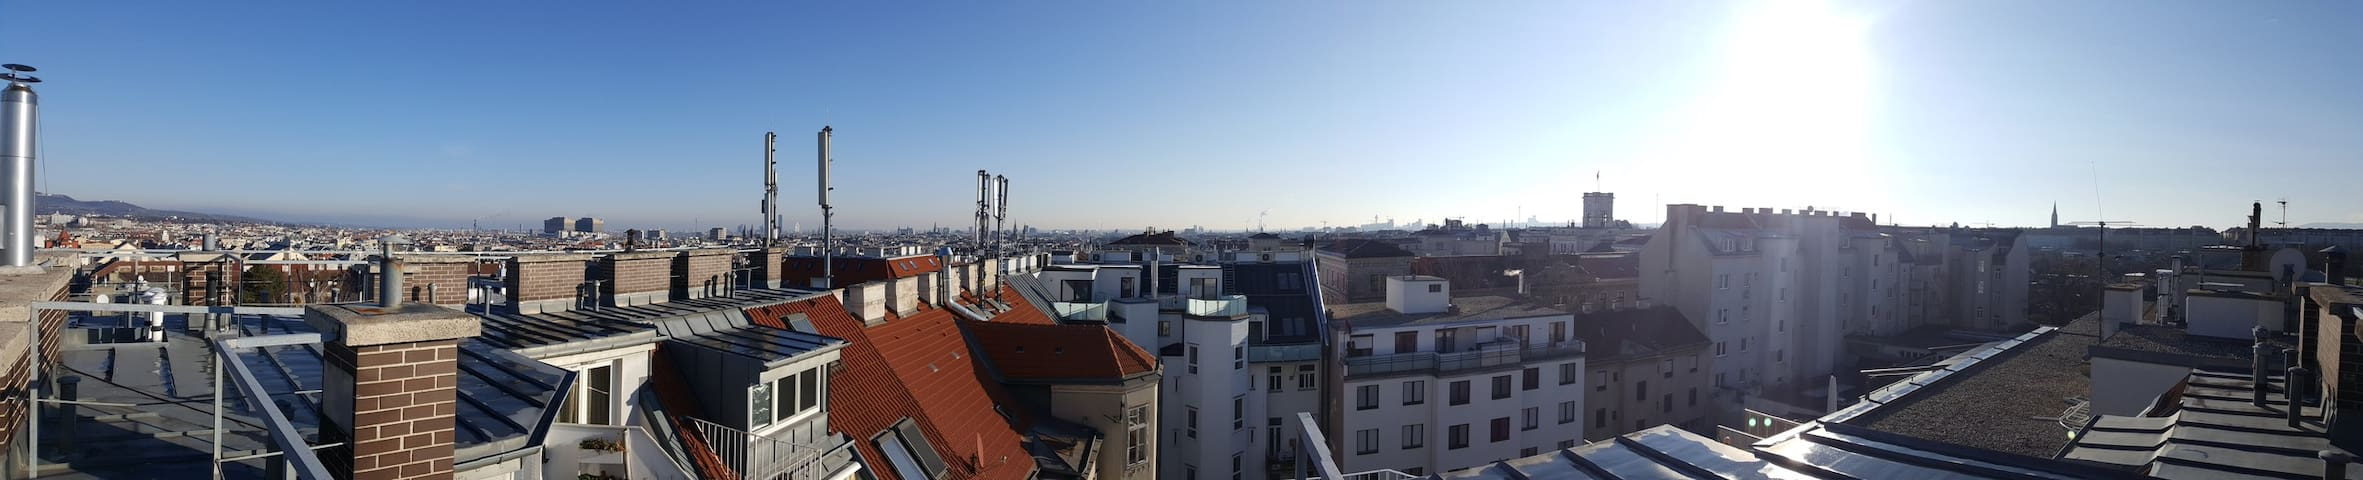 panorama view cityscape from roofterrace